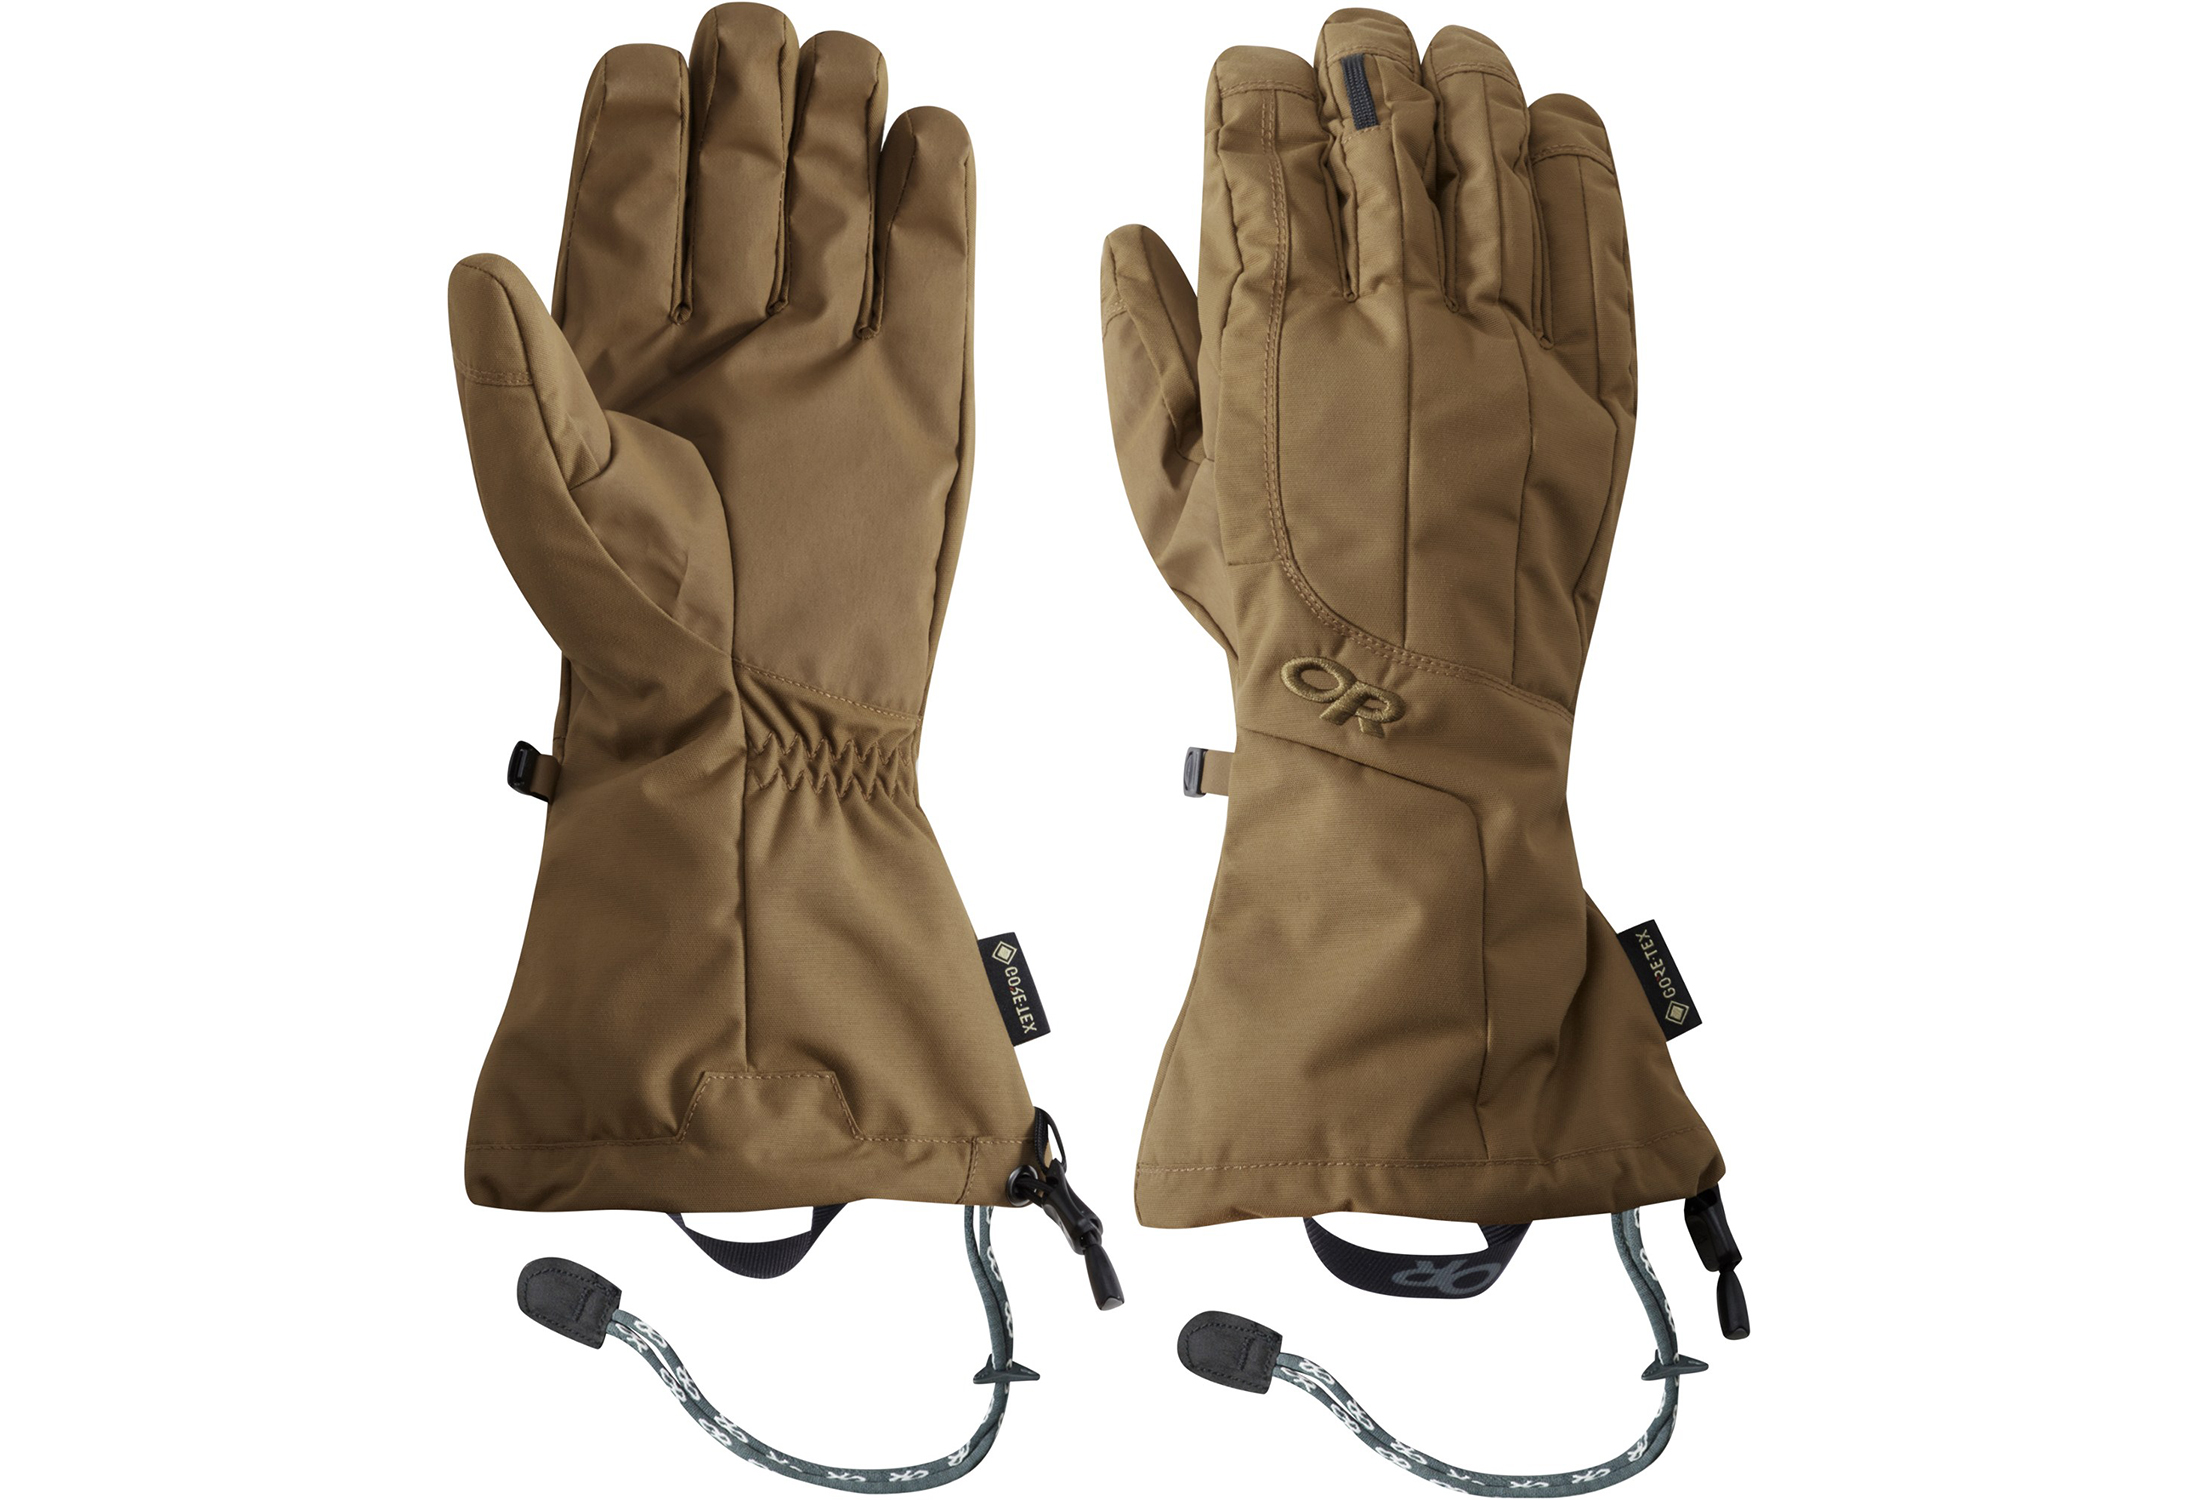 OR arete gloves